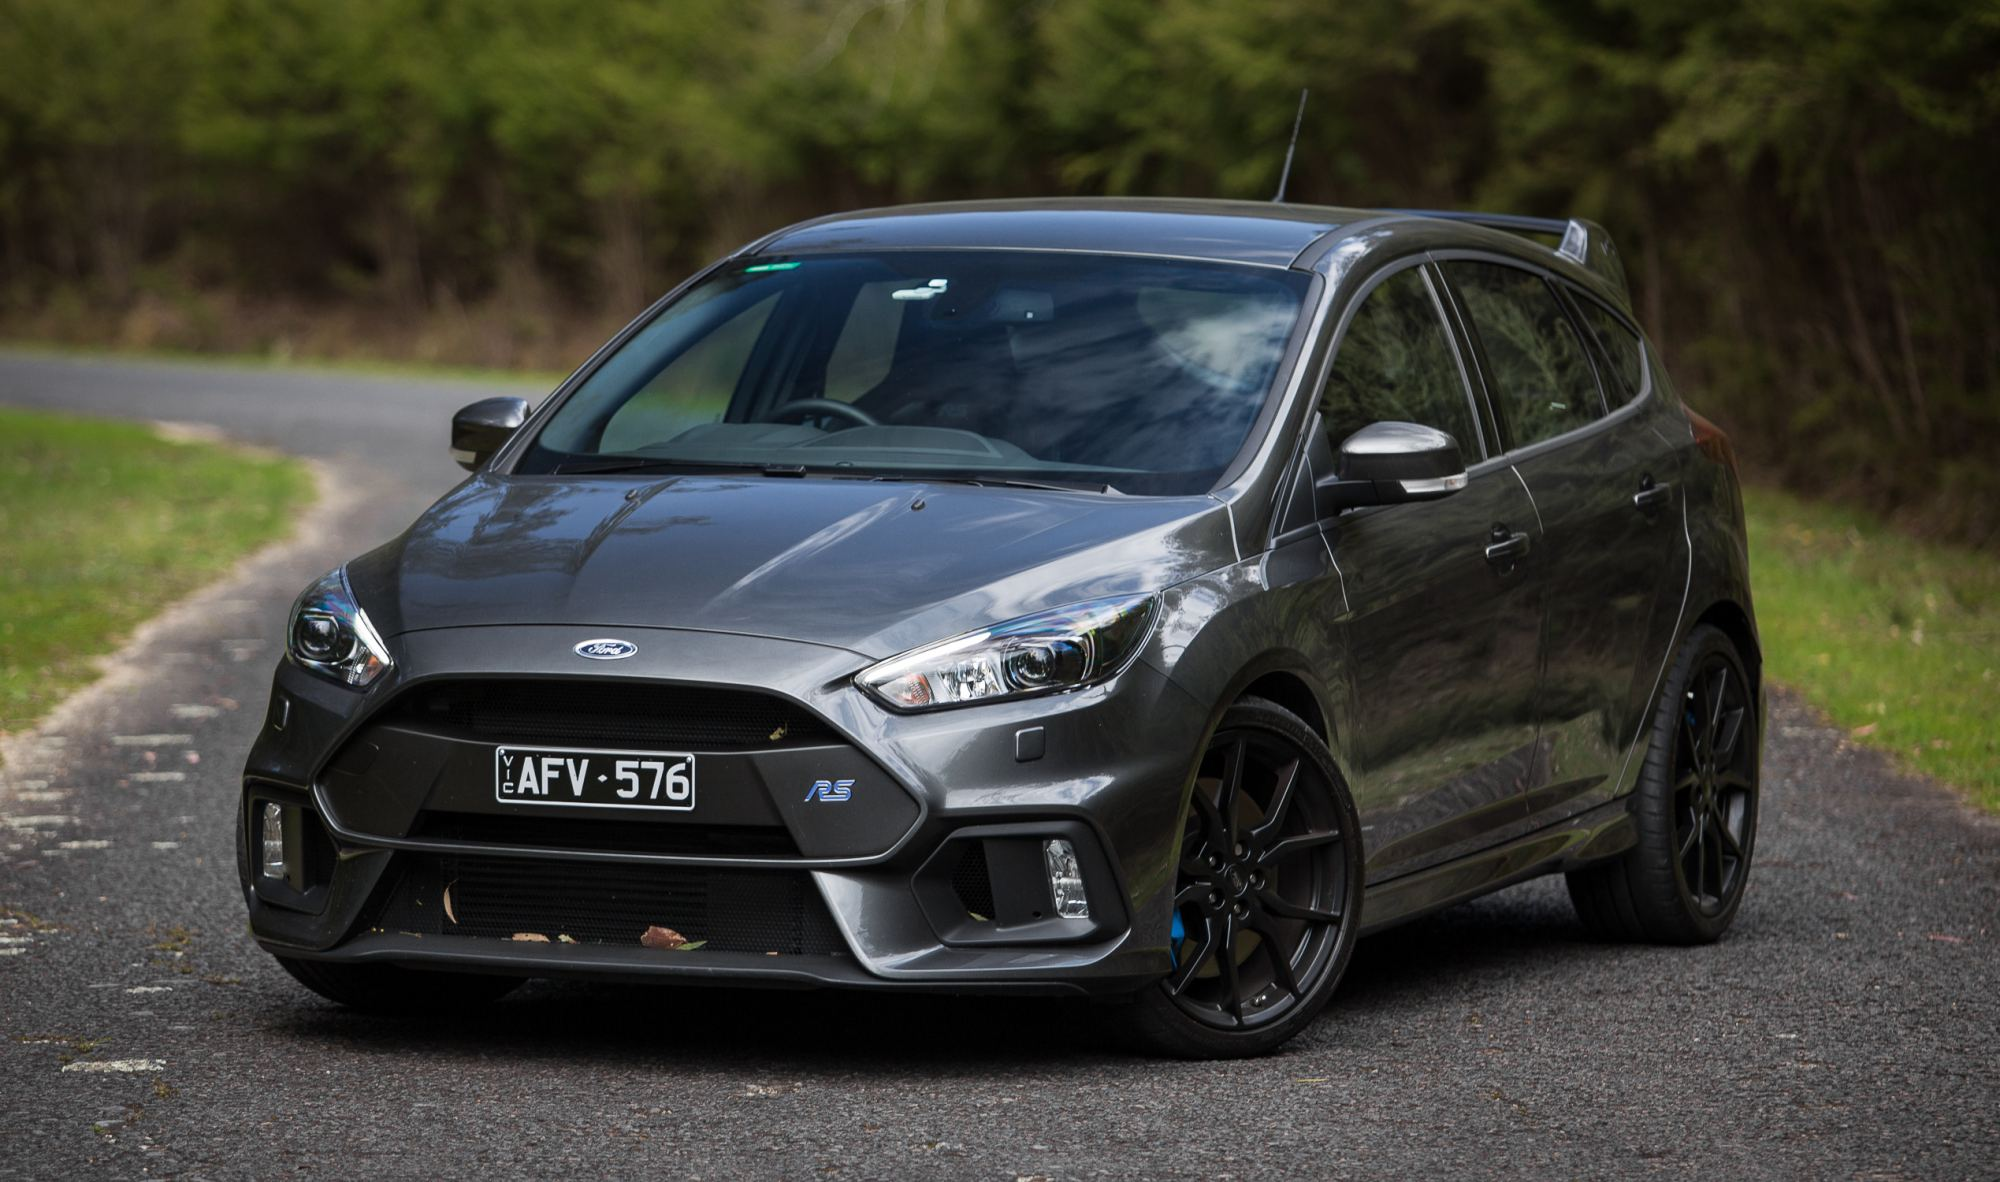 news ford admits focus rs 2 3 ecoboost has issues. Black Bedroom Furniture Sets. Home Design Ideas